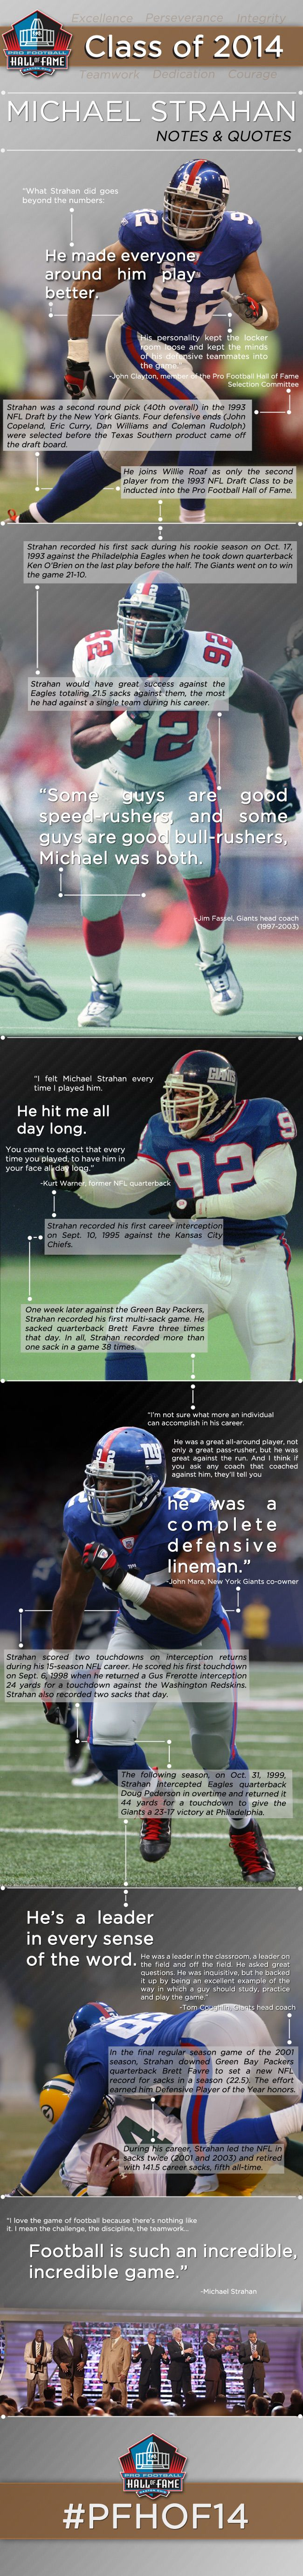 [Infographic] Notes & Quotes from Michael Strahan's Pro Football Hall of Fame career with the New York #Giants.